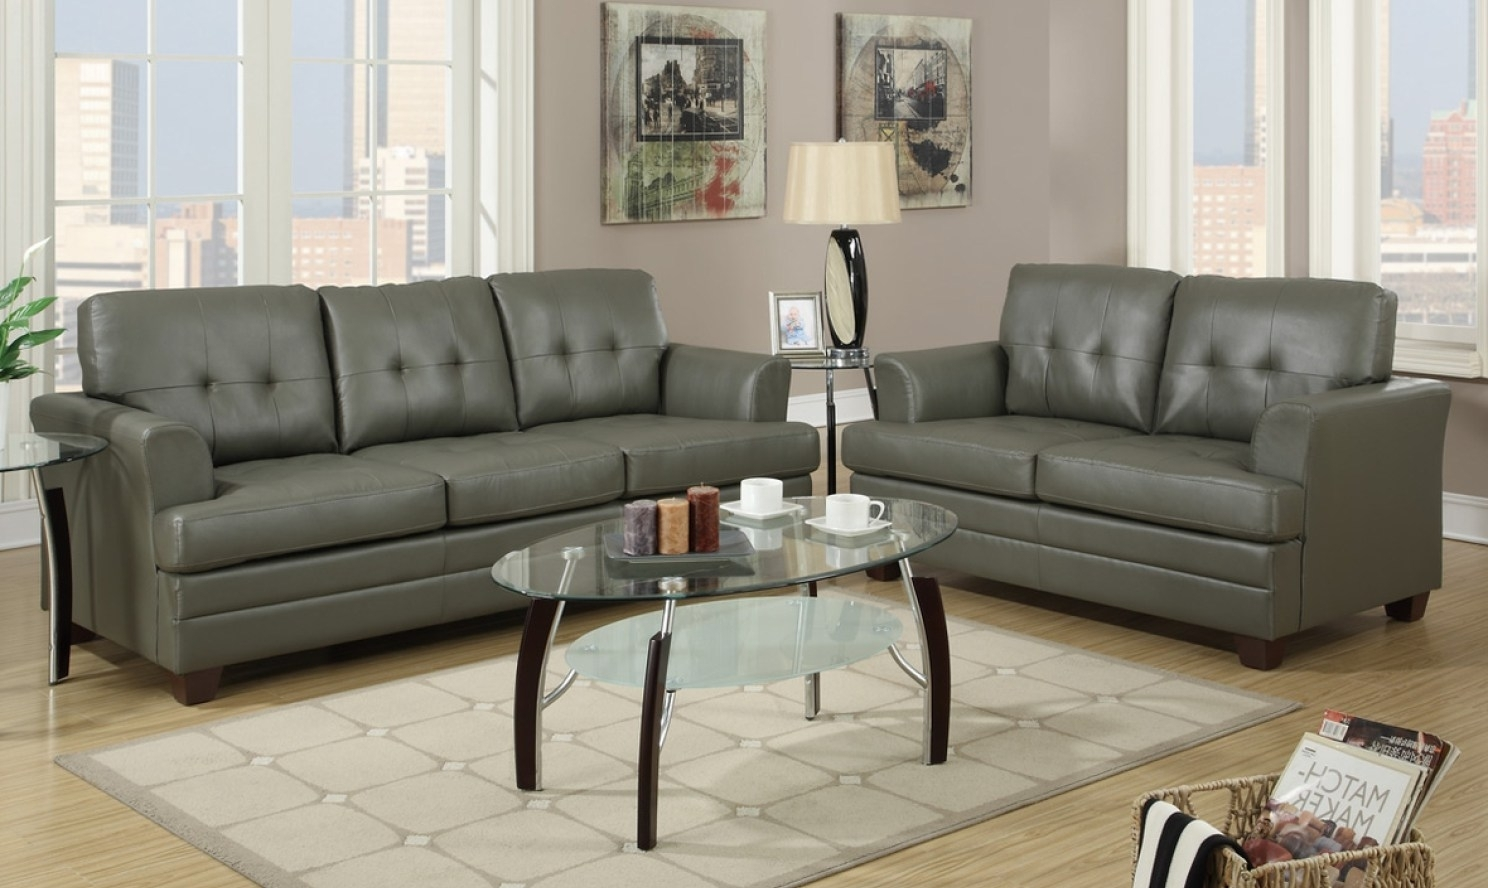 Sectional Sofas In Stock Regarding Most Popular Wayfair Reviews Overstock Stock Overstock Desktop Site Niraj Shah (View 12 of 15)